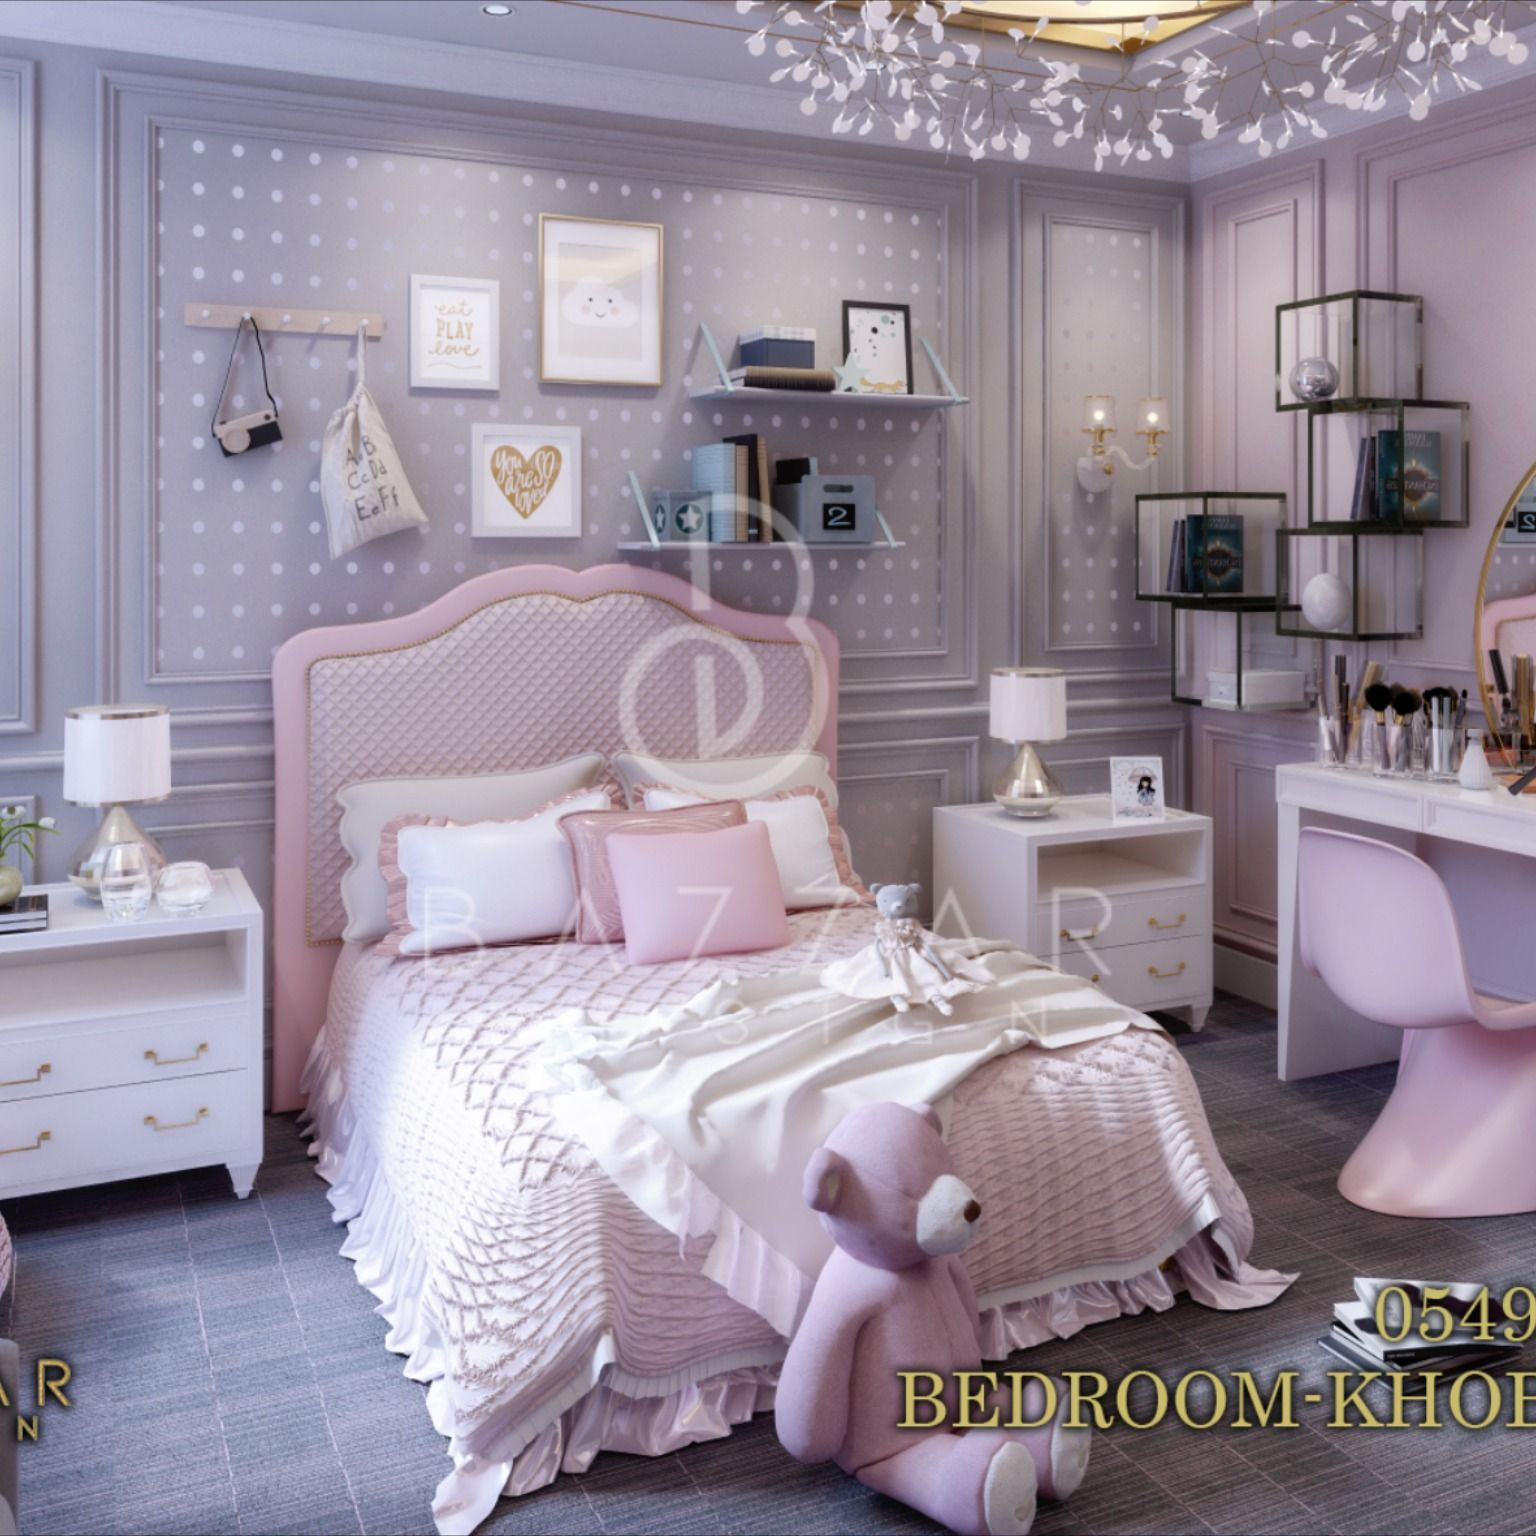 Pin By Rezamohammed Allamy On ربة منزل Girl Room Home House Front Design